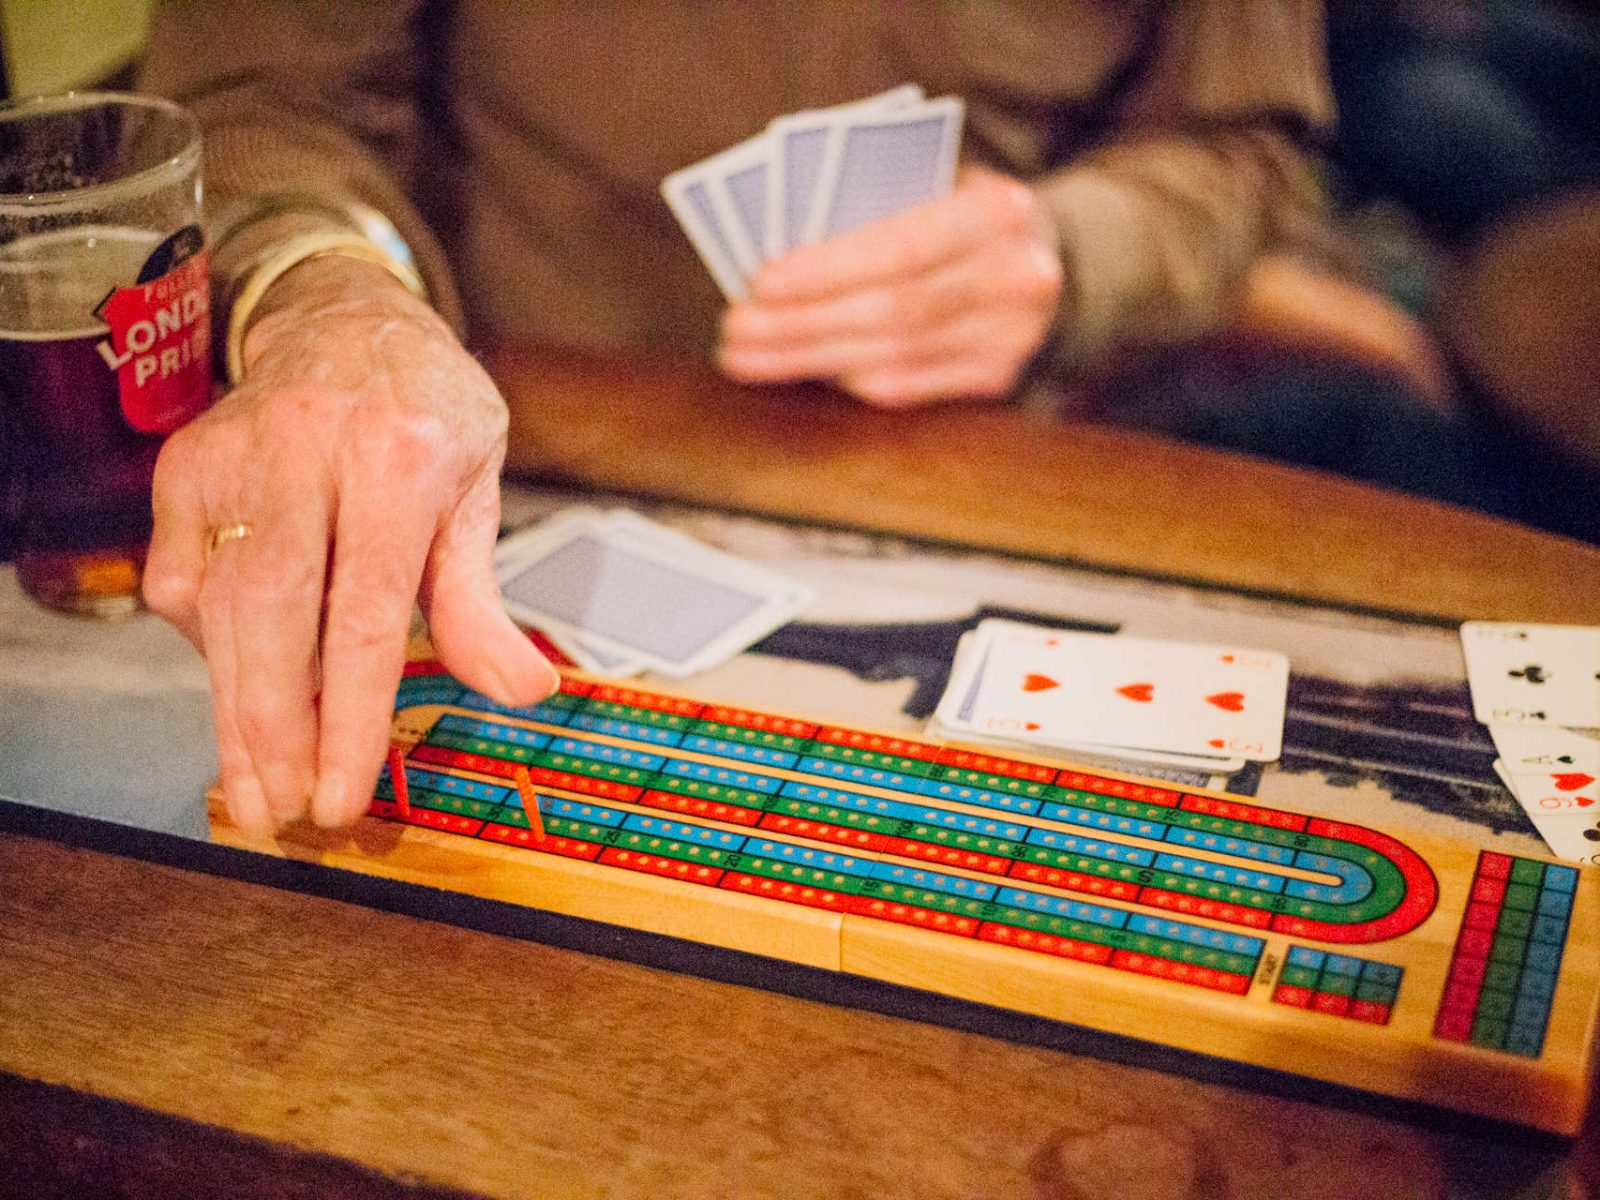 We love a good card game. How about you?